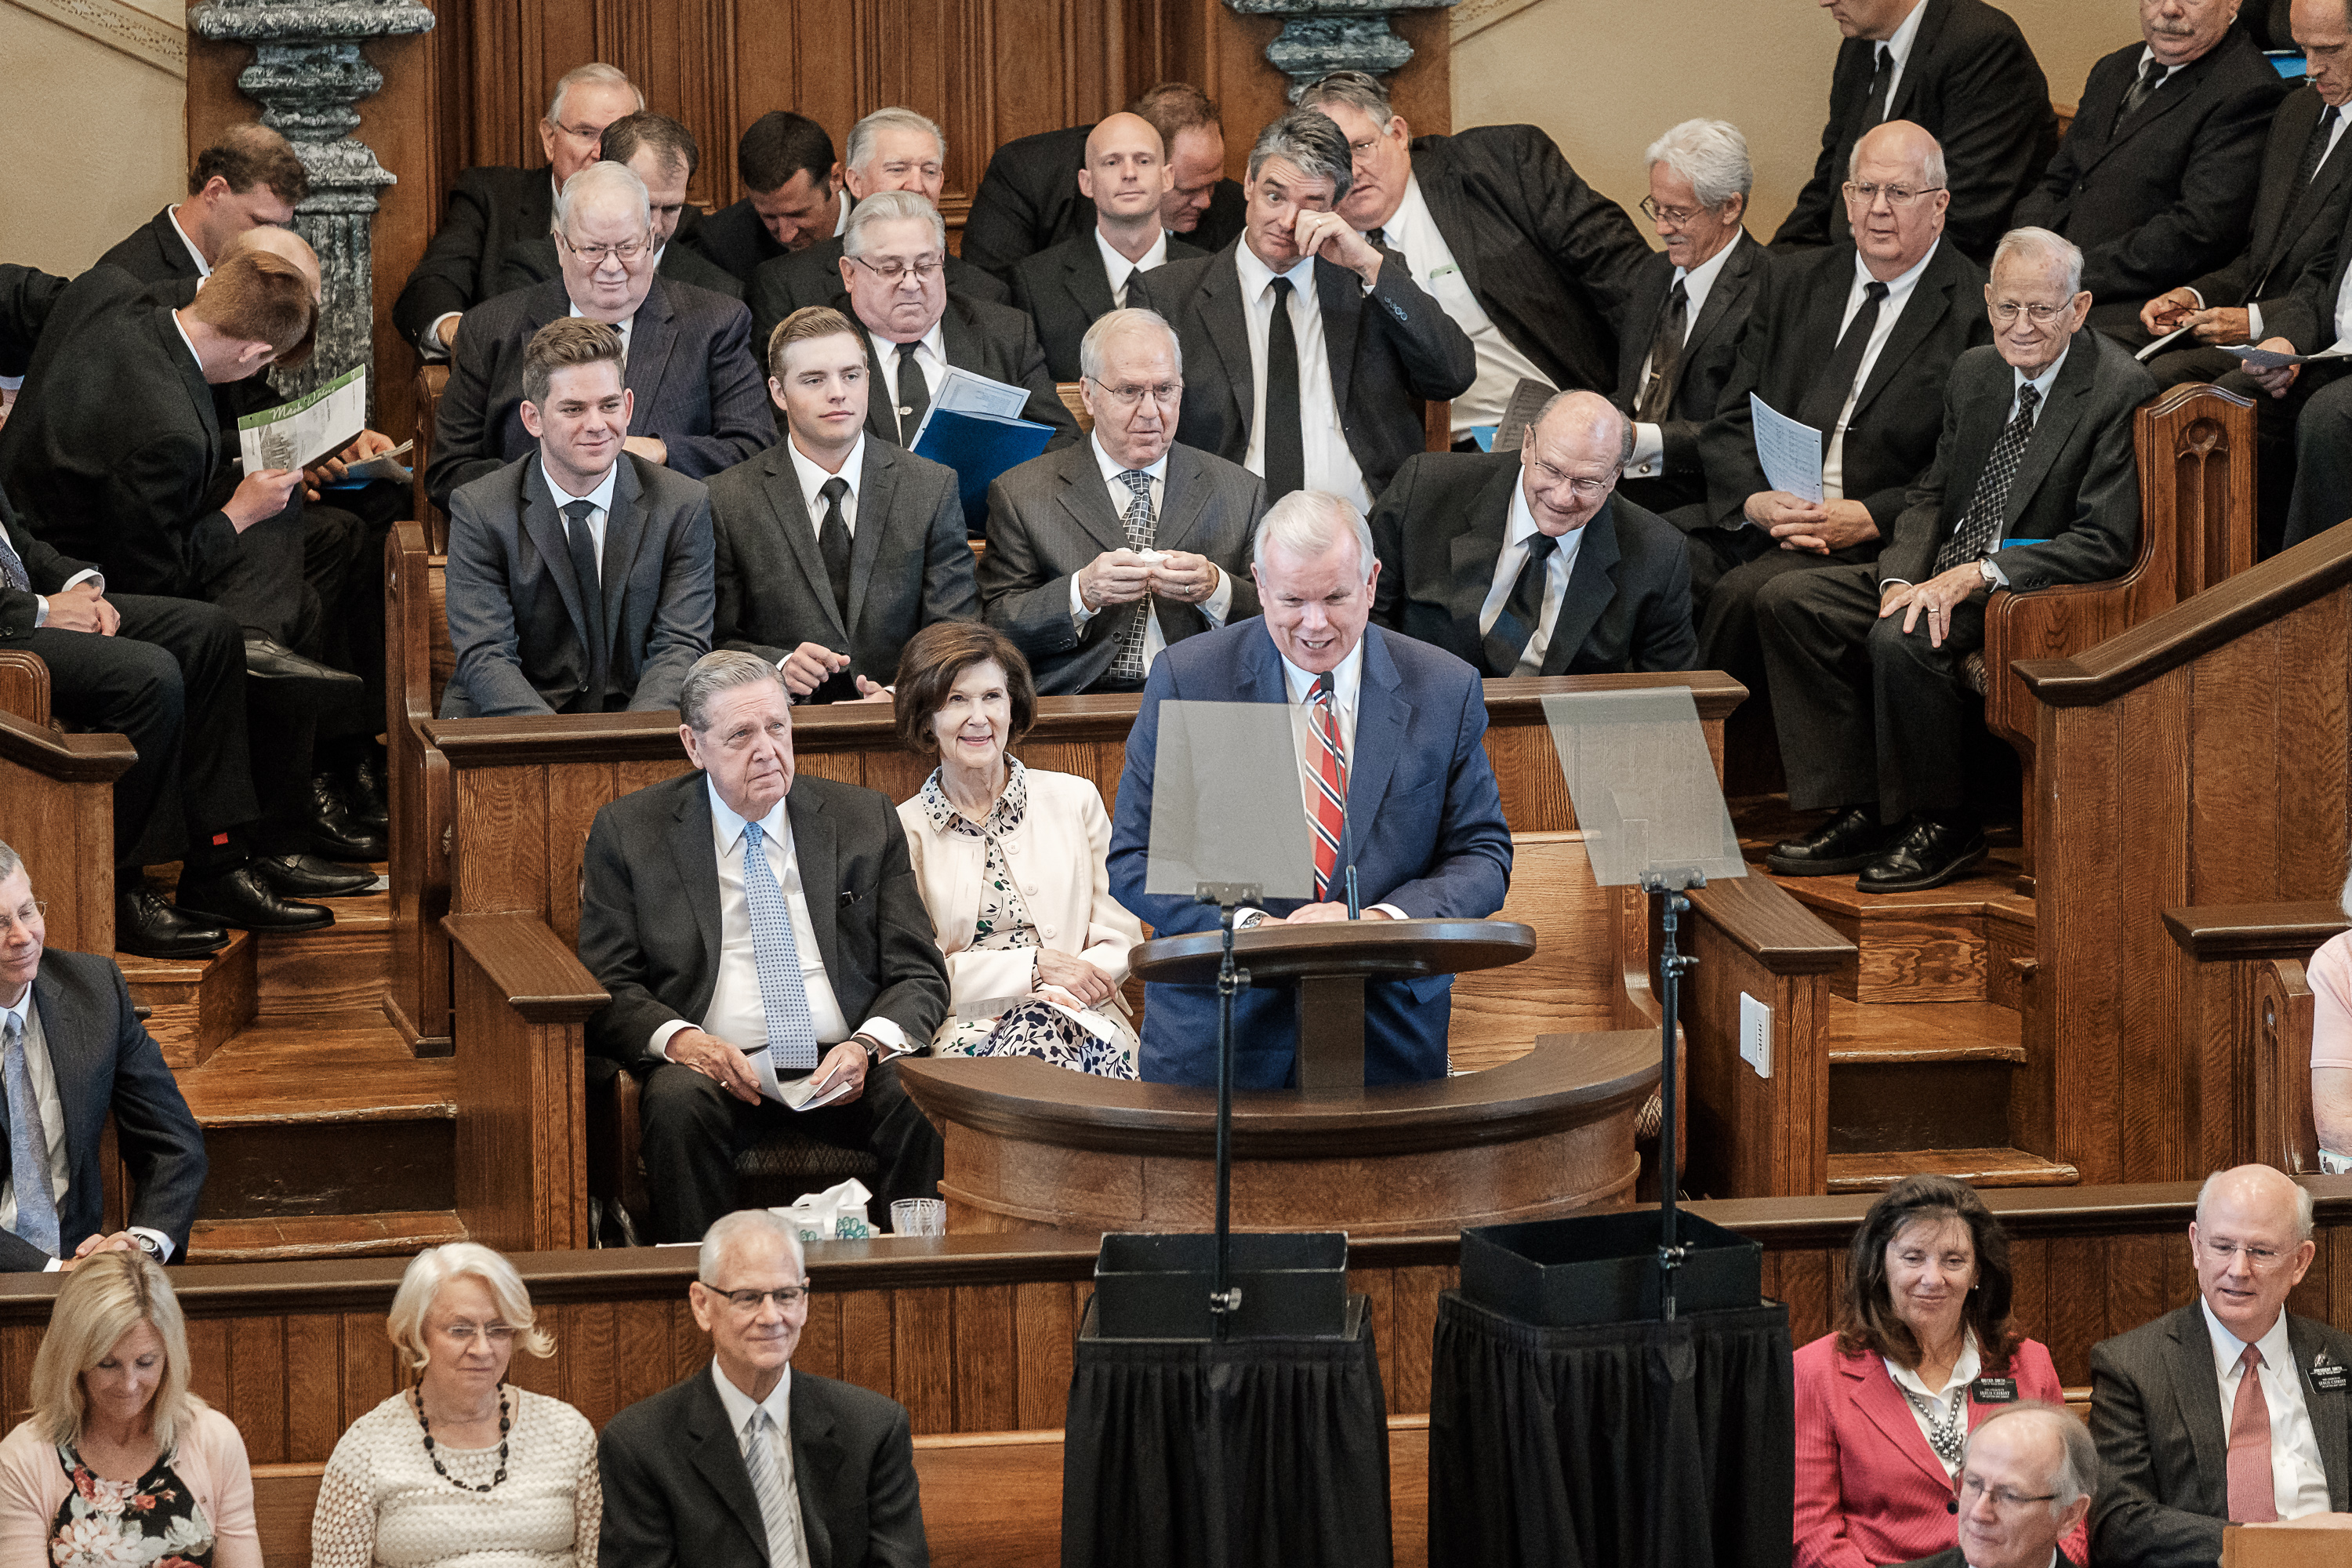 Elder Stephen E. Snow, Church Historian and General Authority Seventy of The Church of Jesus Christ of Latter-day Saints, speaks from the pulpit Saturday, July 28, 2018, during a rededication ceremony at the St. George Tabernacle in St. George, Utah. The building was rededicated after a two-year renovation.